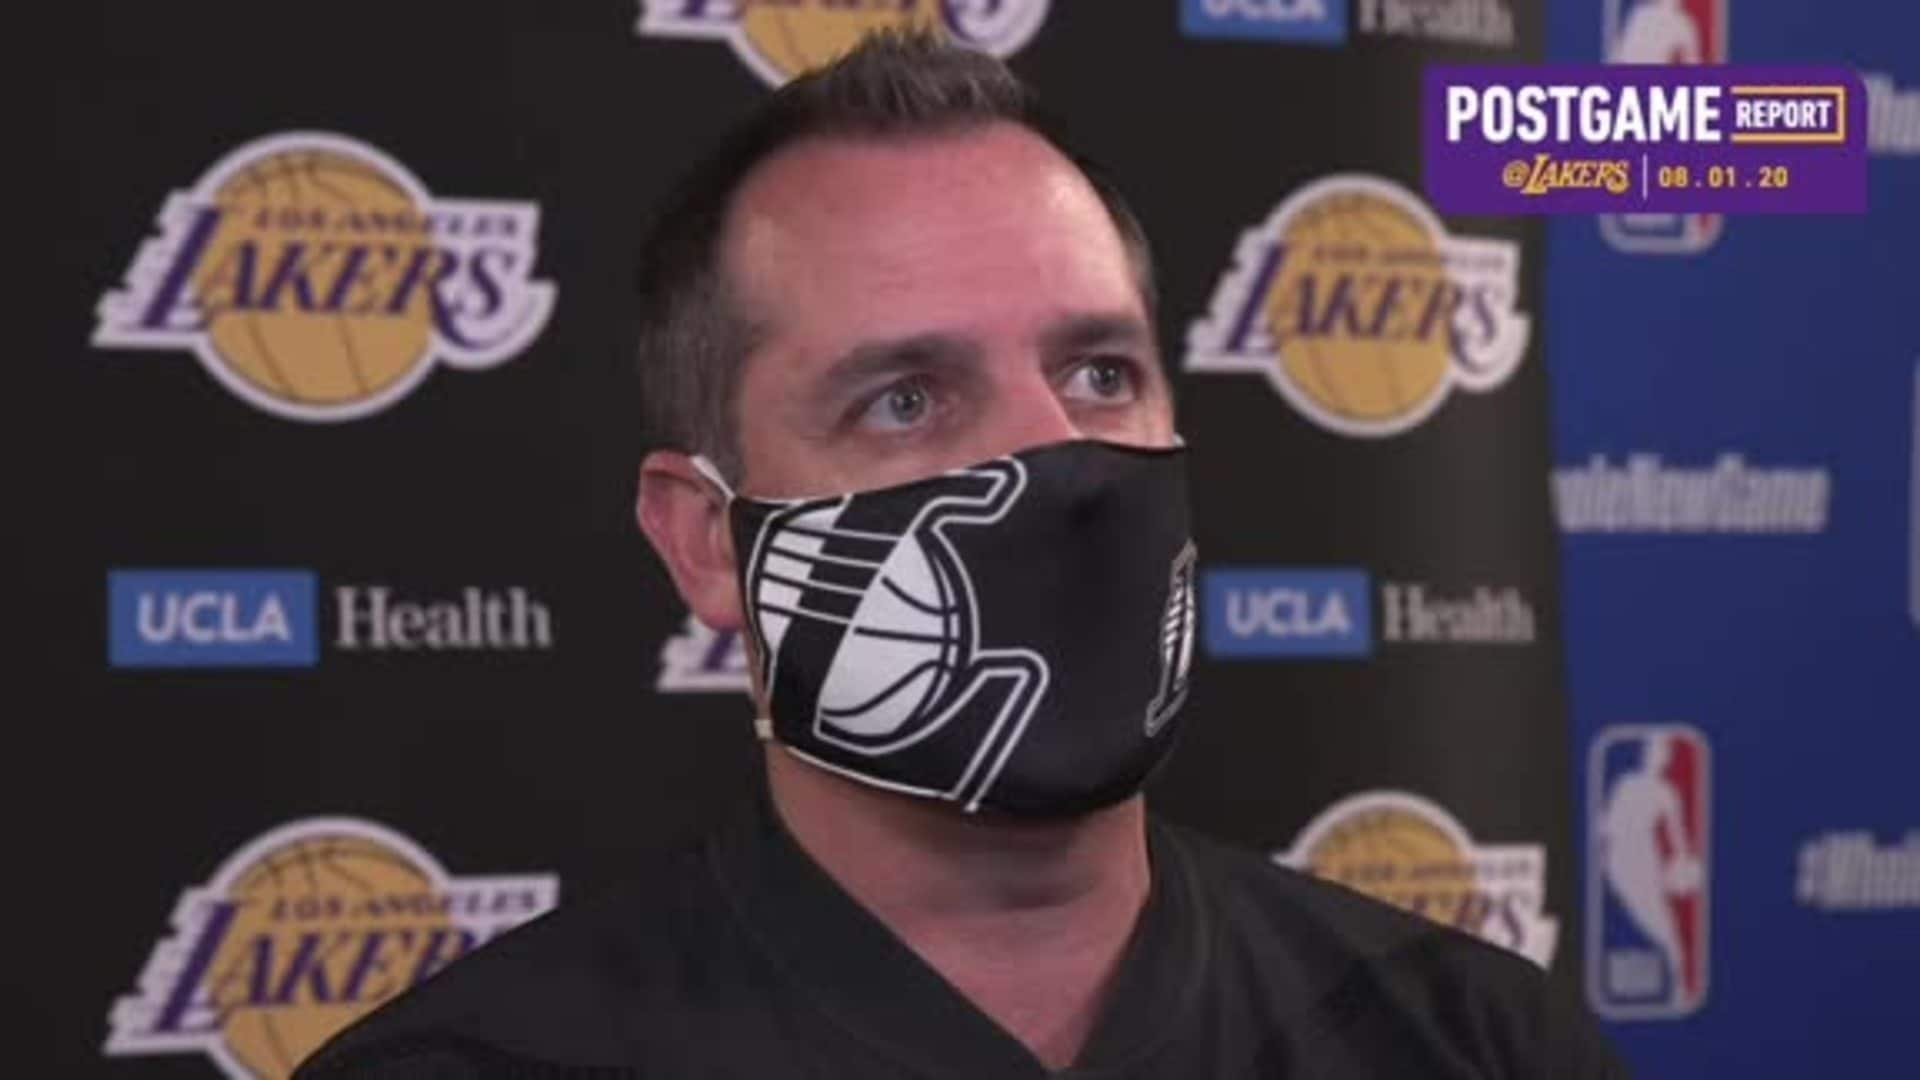 Lakers Postgame: Frank Vogel (8/1/20)